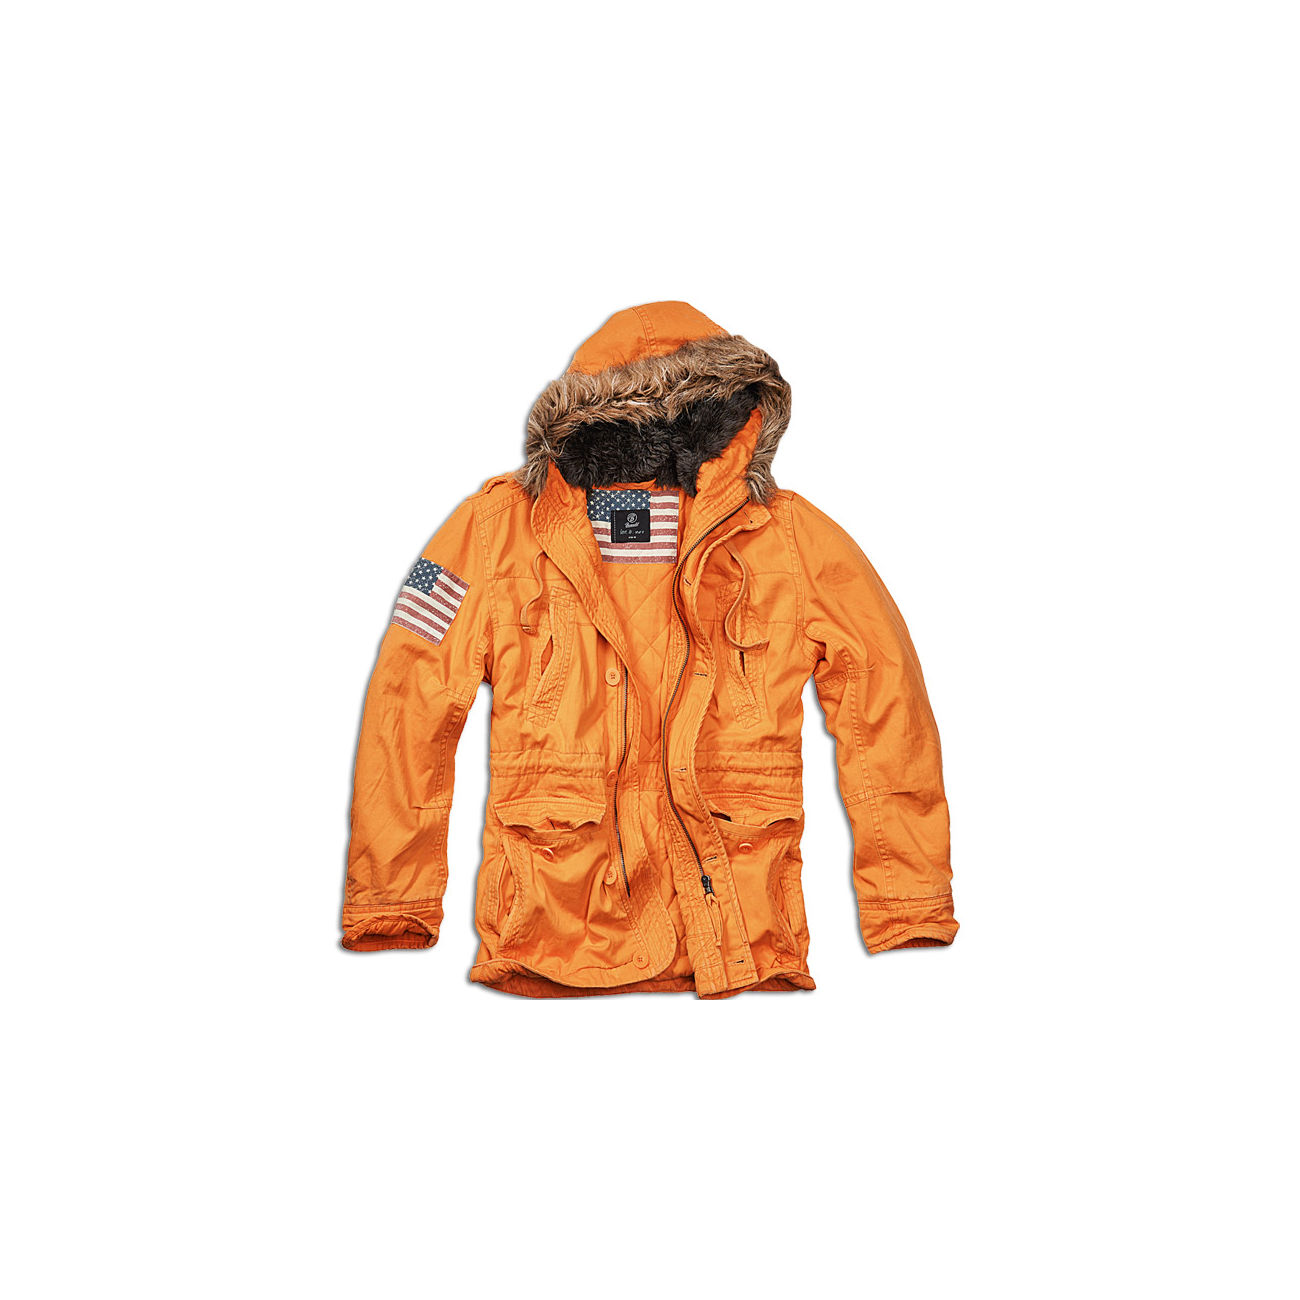 Brandit Jacke Vintage Explorer Stars & Stripes orange 0